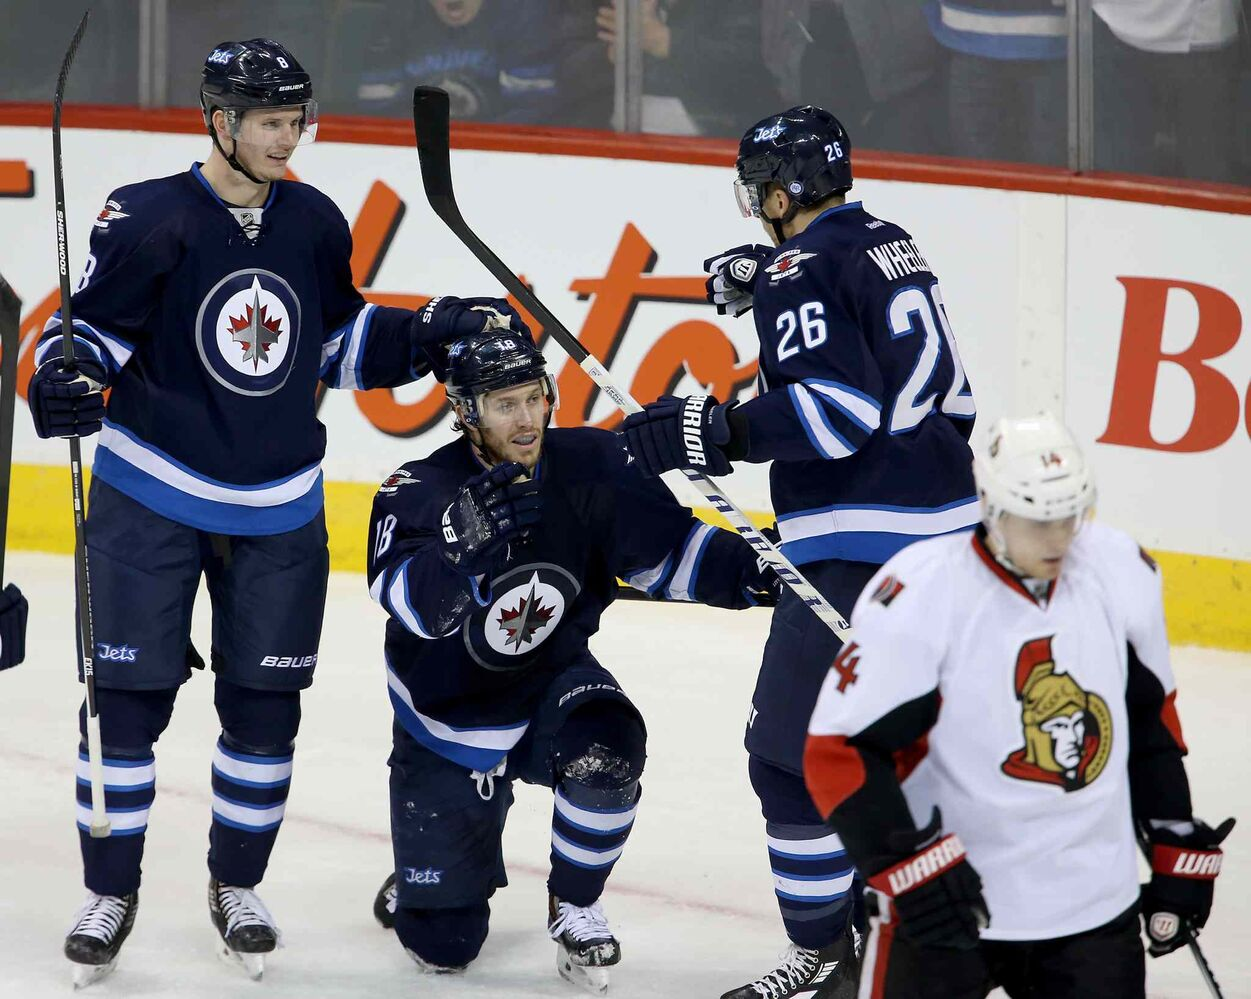 Winnipeg Jets' Jacob Trouba (8), Bryan Little (18) and Blake Wheeler (26) celebrate as Ottawa Senators' Colin Greening (14) looks on after Little scored during first period NHL hockey action at MTS Centre in Winnipeg Saturday.  (TREVOR HAGAN / WINNIPEG FREE PRES)